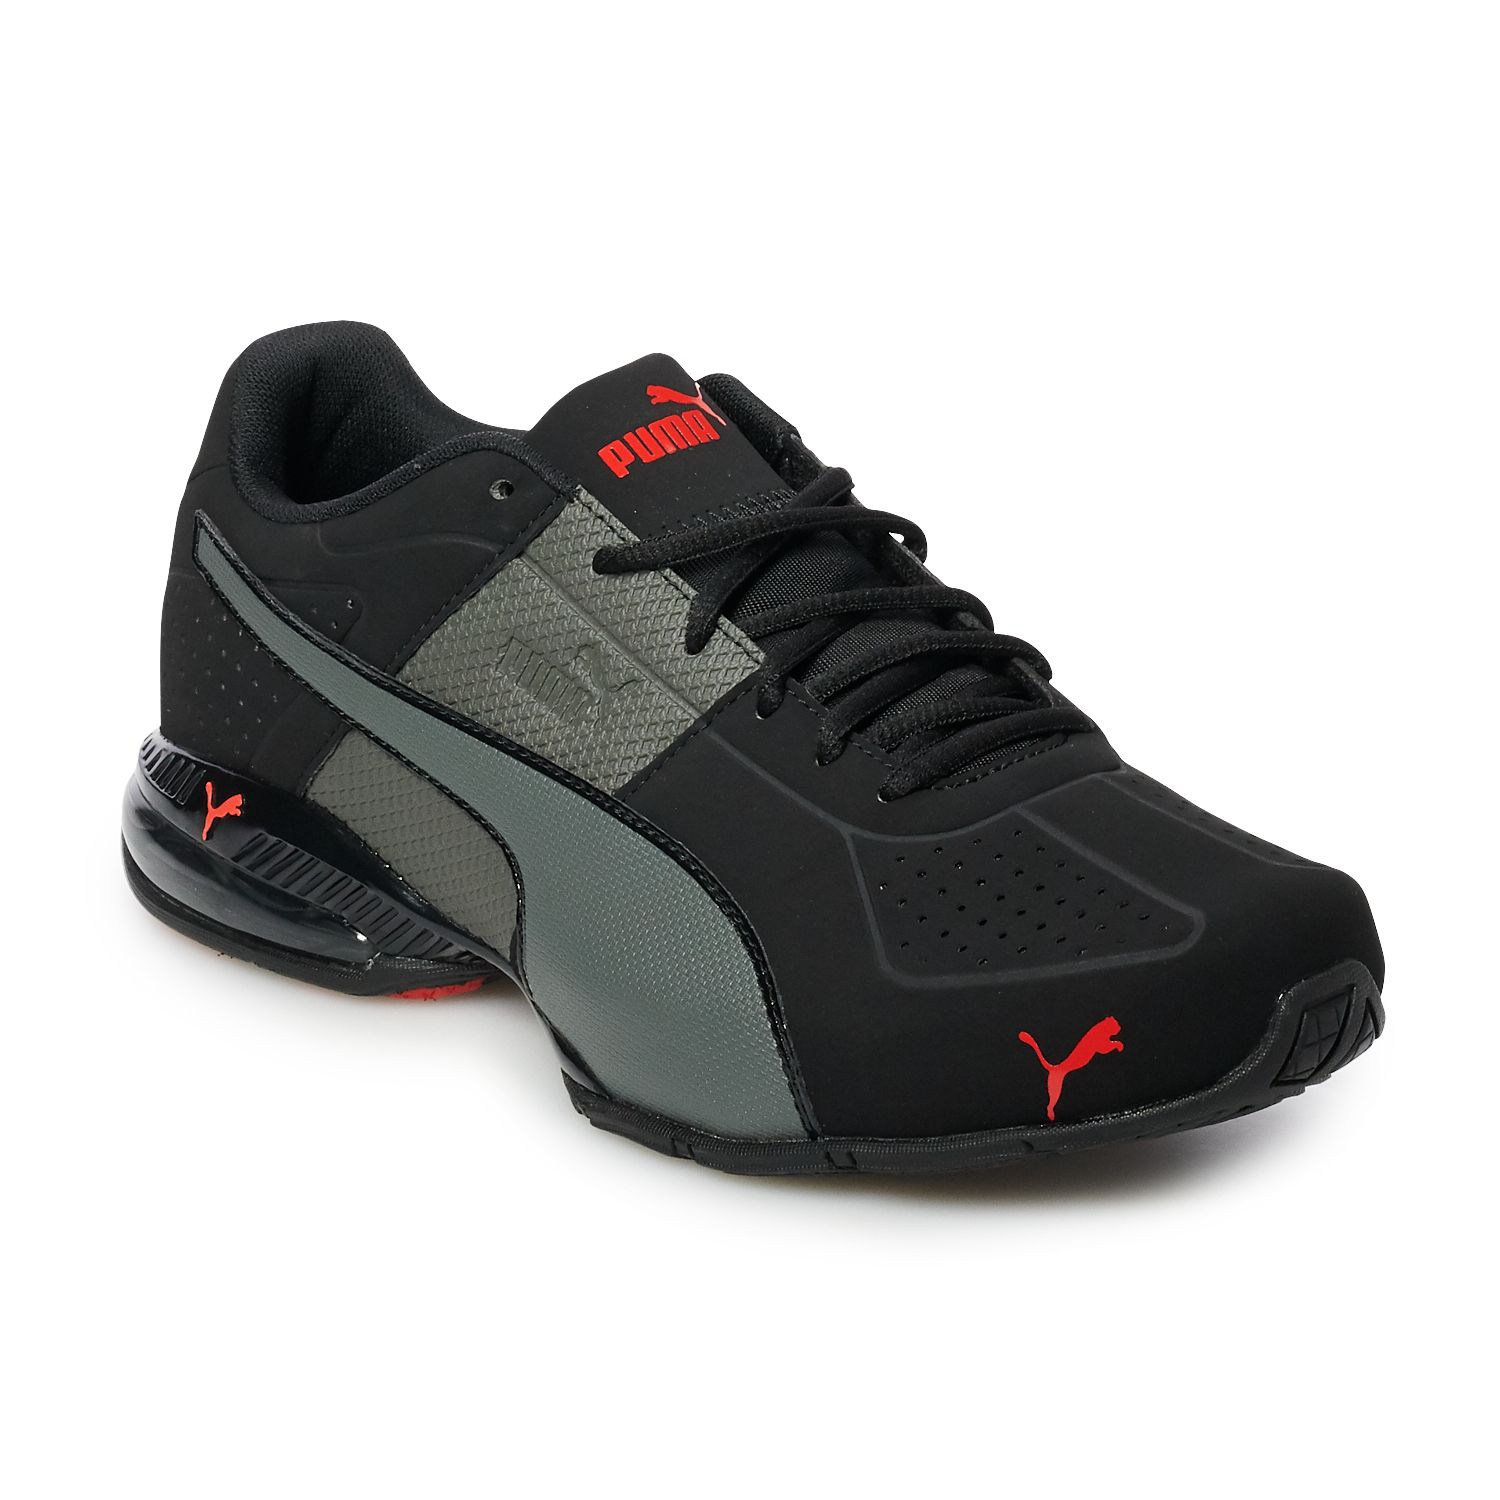 3526d32cdc PUMA Cell Surin 2 Men's Cross-Training Shoes